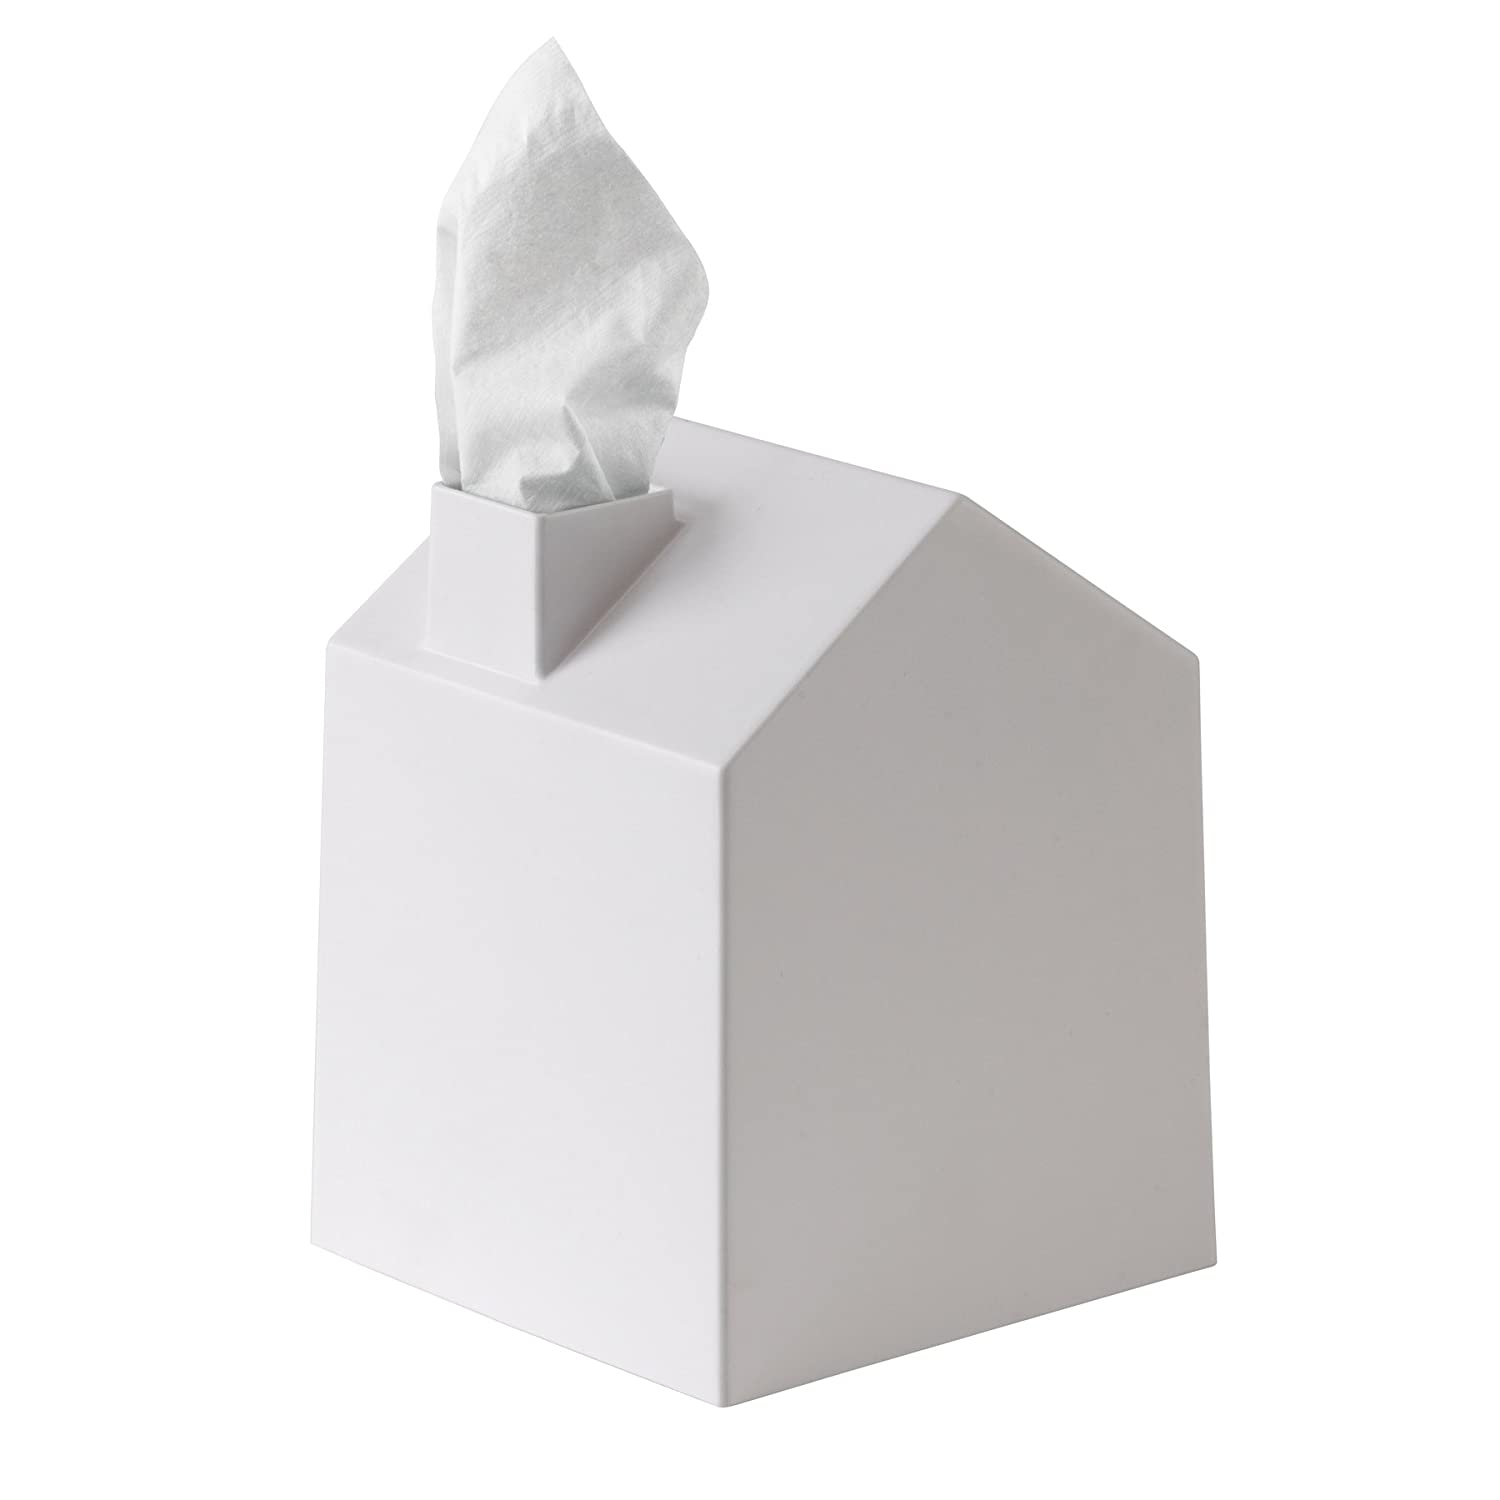 Buy 'Casa' tissue box cover by Umbra